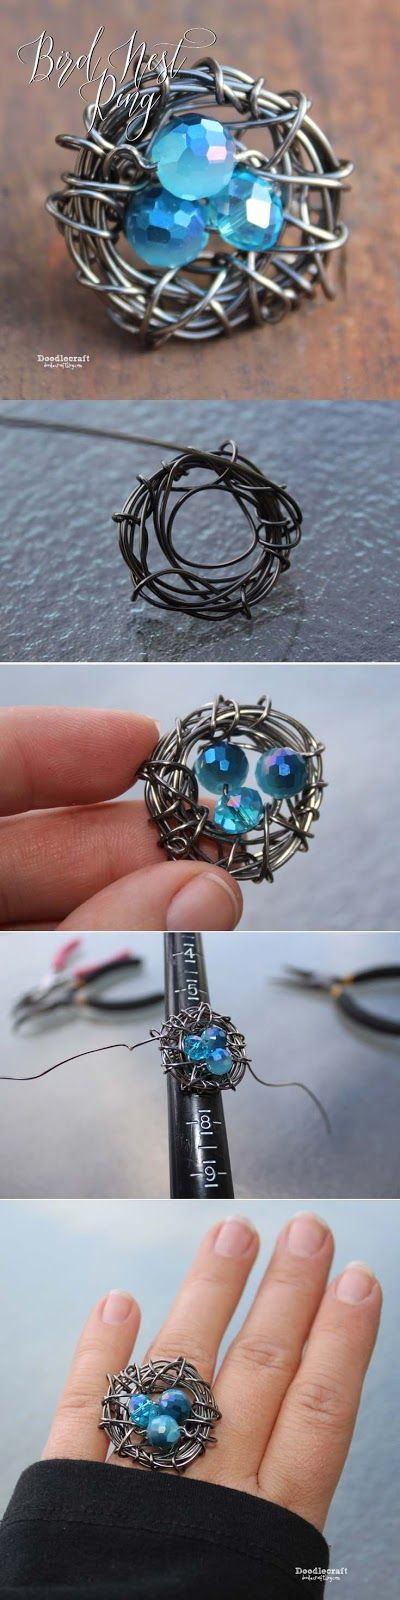 Wire Wrapped Bird Nest Ring!  Adorable mother ring, great gift idea or just absolute adorableness!